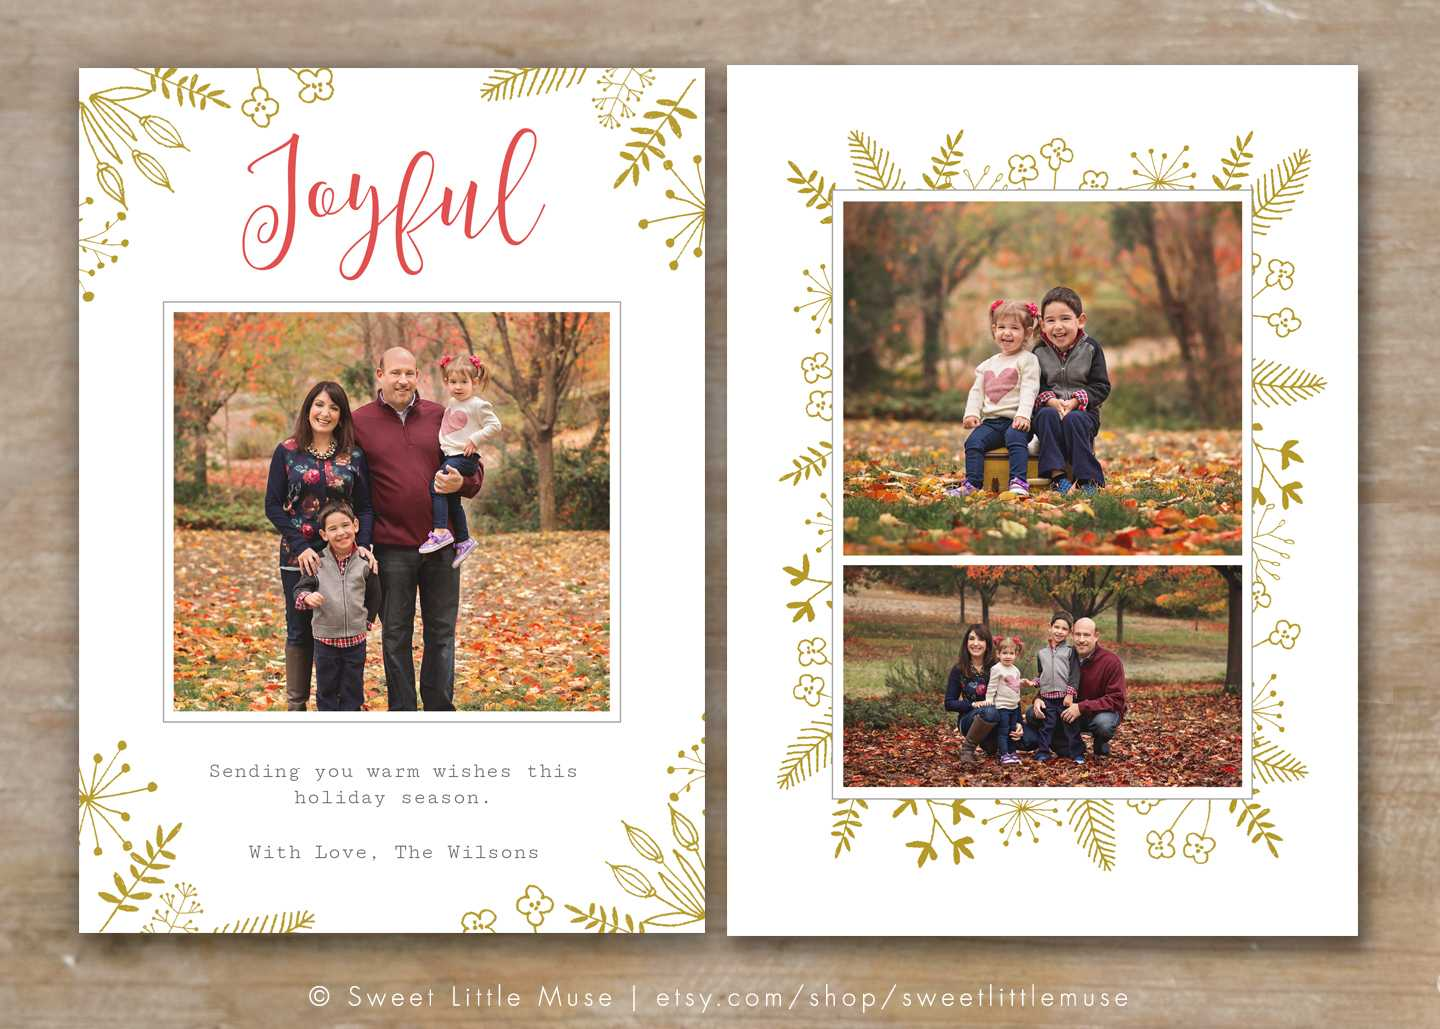 30 Holiday Card Templates For Photographers To Use This Year Regarding Holiday Card Templates For Photographers